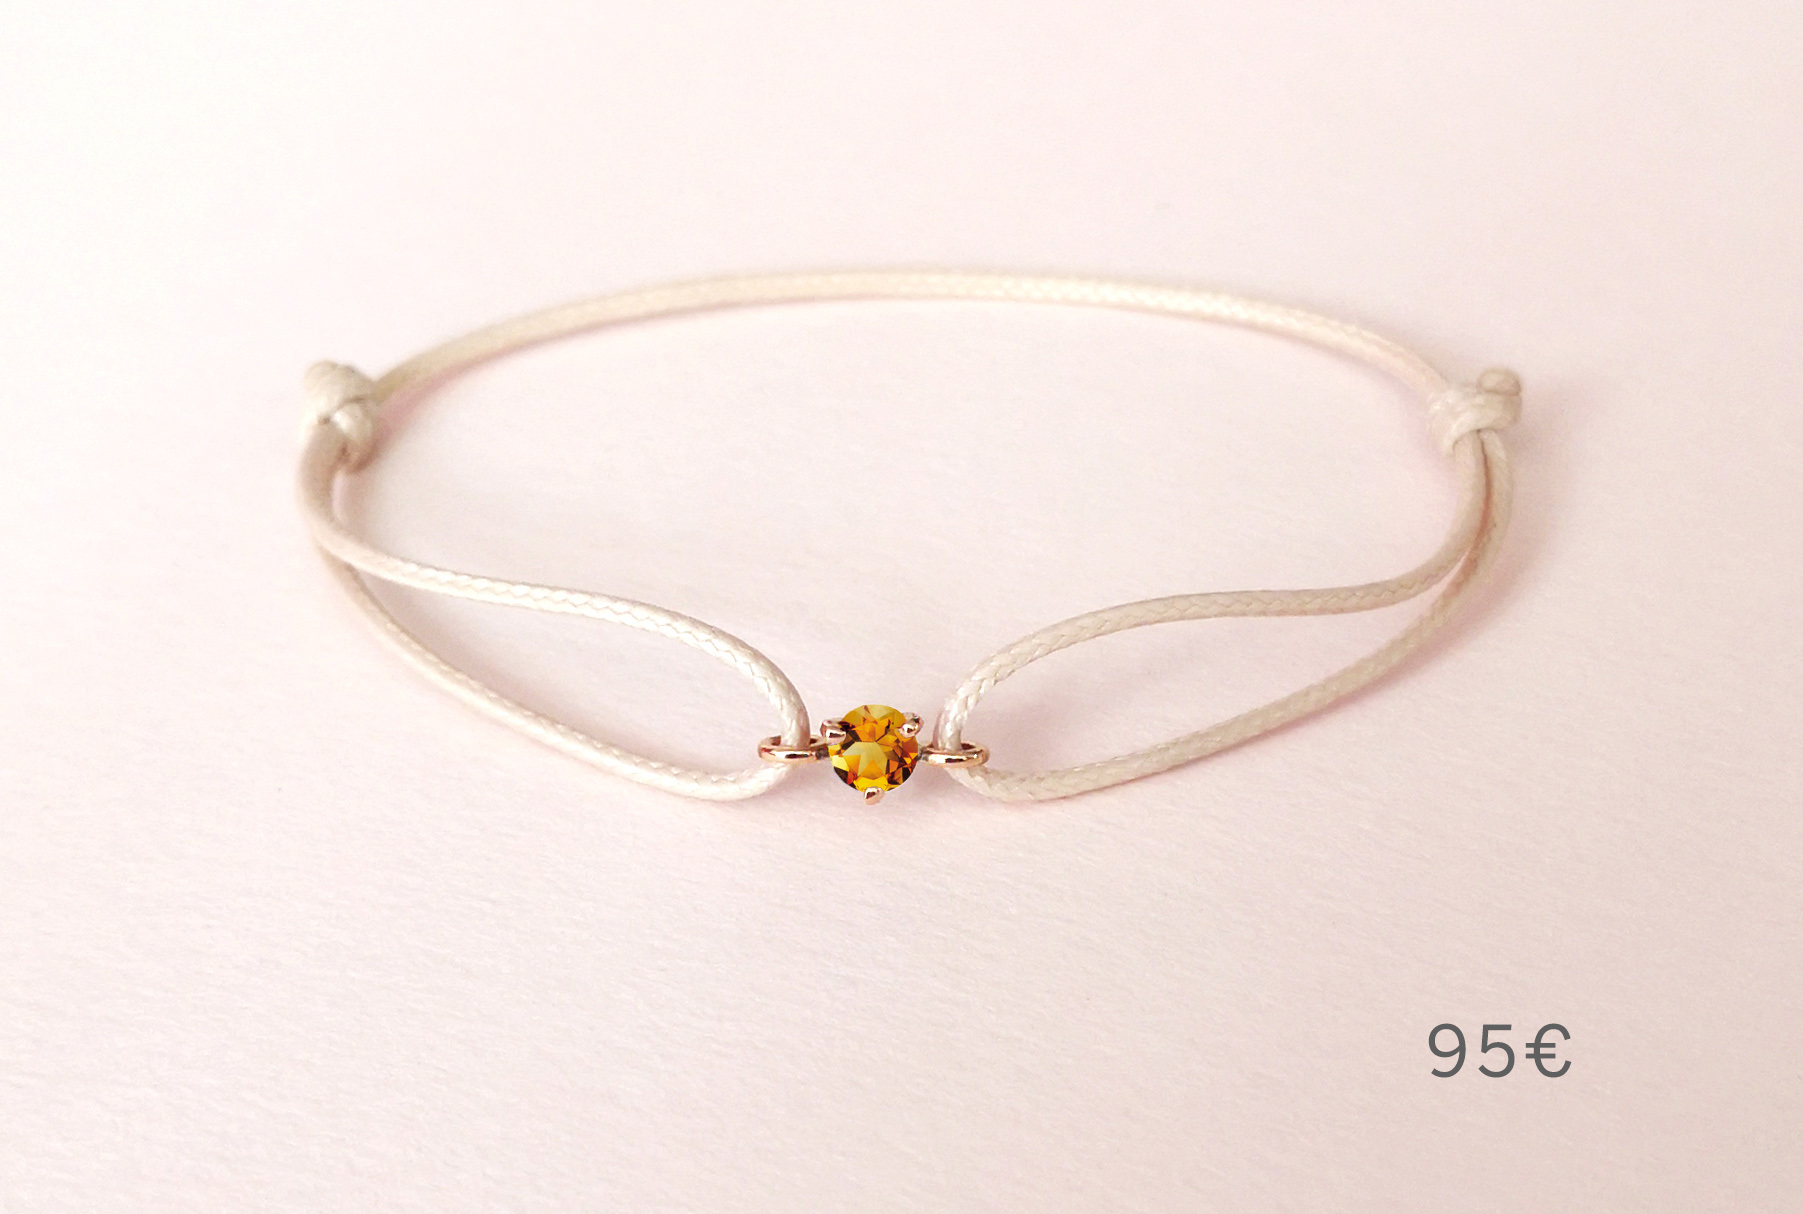 Bracelet Pause Goûter citrine, Collection Weekends Express - Courpré Joaillerie - The Explorative Fine Jewelry